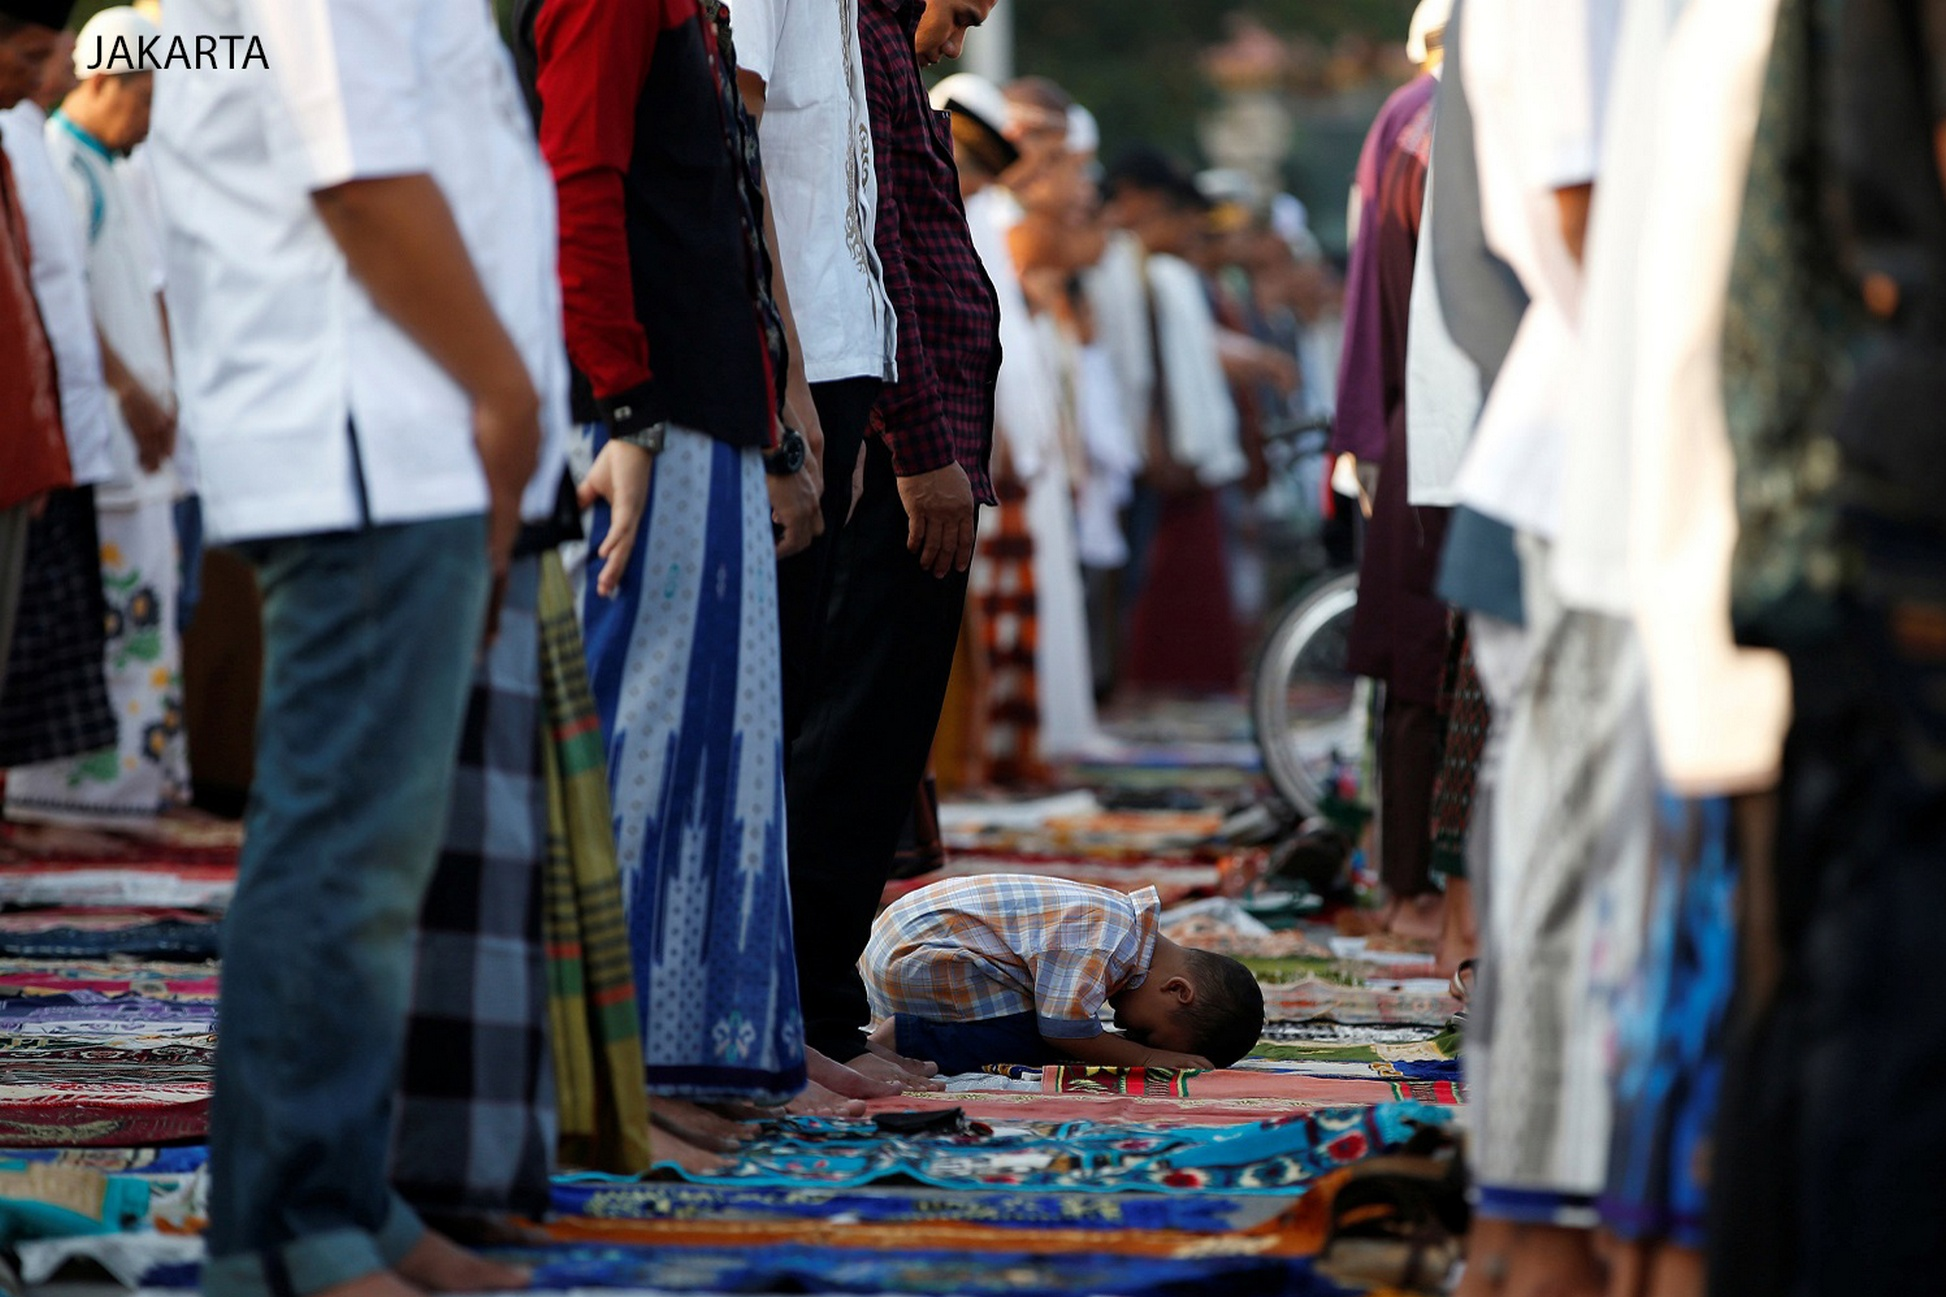 A child attends Eid al-Fitr prayers to mark the end of the holy fasting month of Ramadan at Sunda Kelapa port in Jakarta, Indonesia July 6, 2016. REUTERS/Darren Whiteside